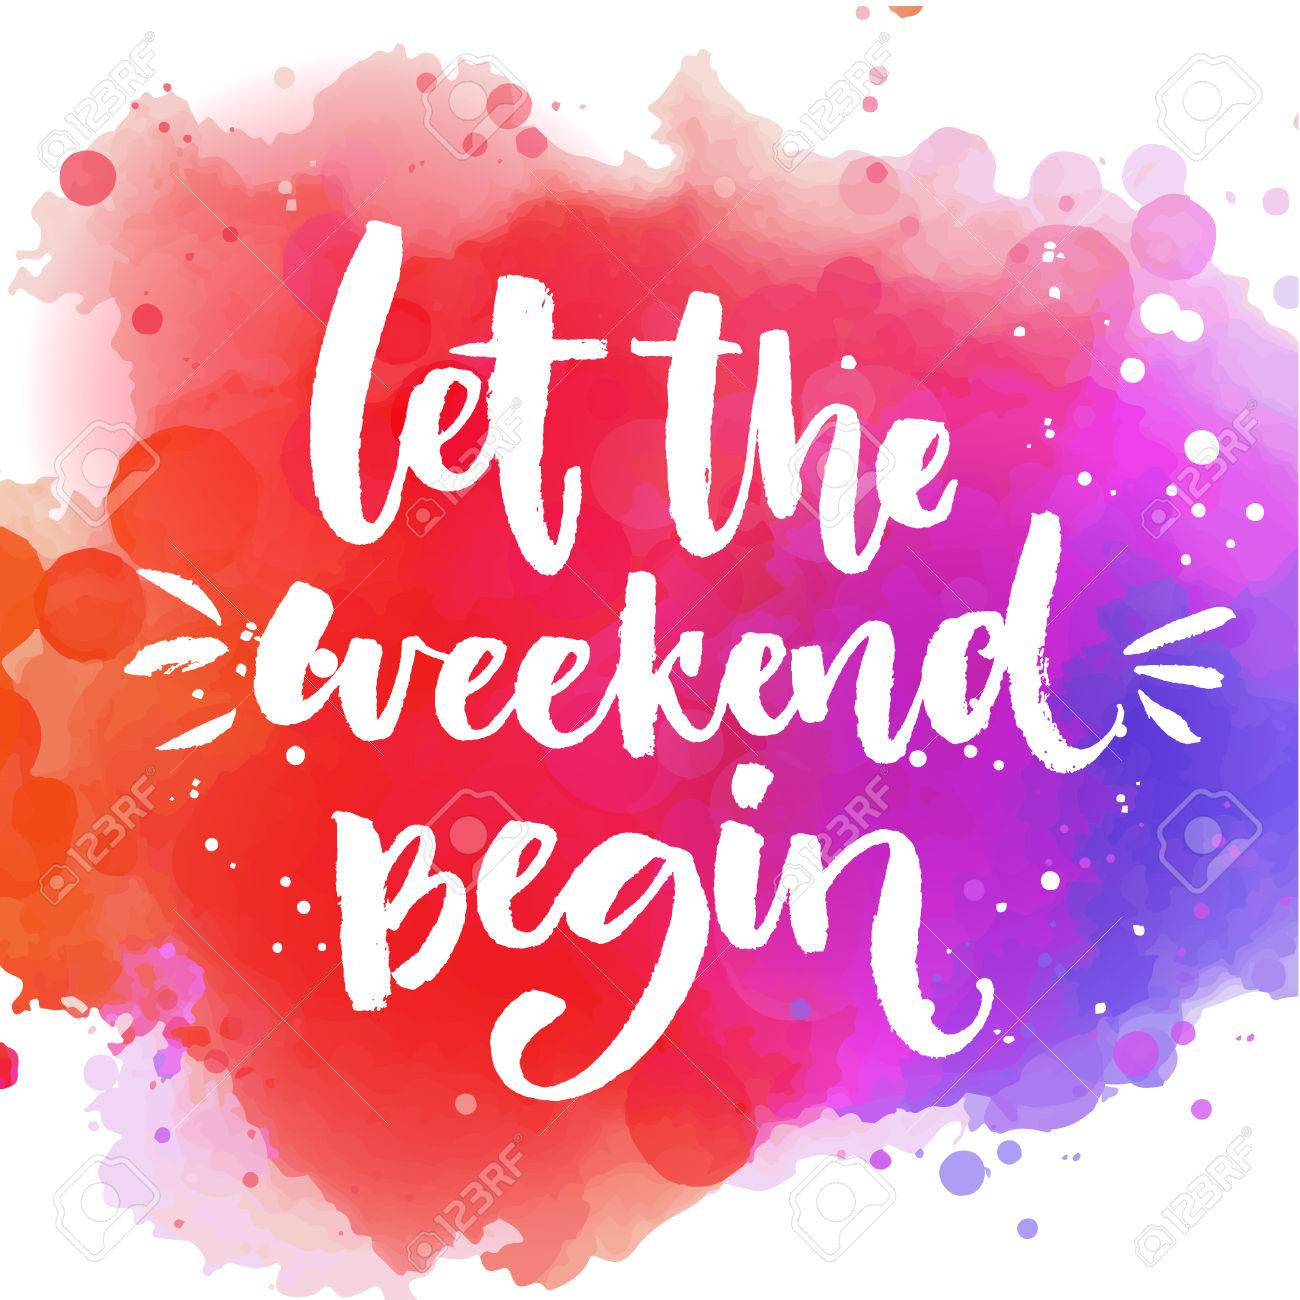 Let the weekend begin. Fun saying about week ending, office motivational quote. Custom lettering at colorful splash background - 60316396